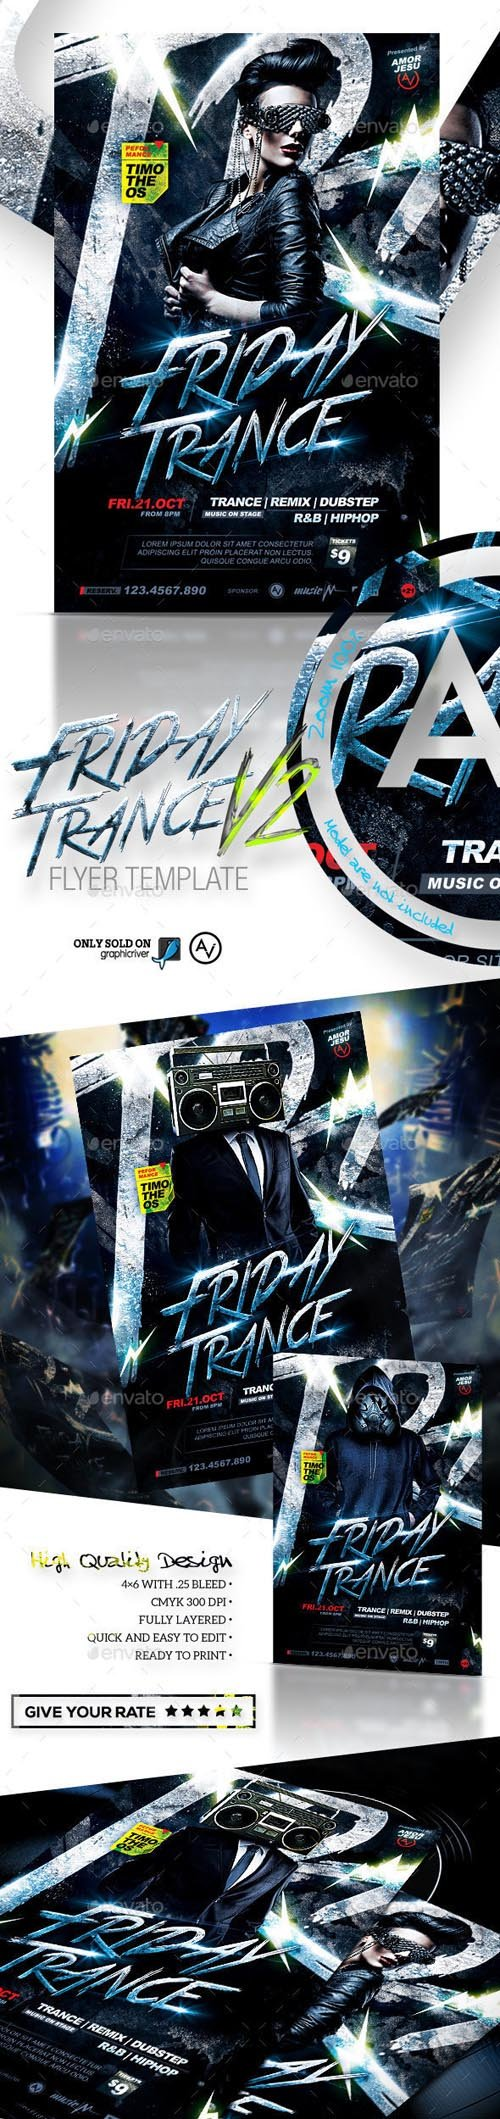 Friday Trance Flyer Template V2 11863774